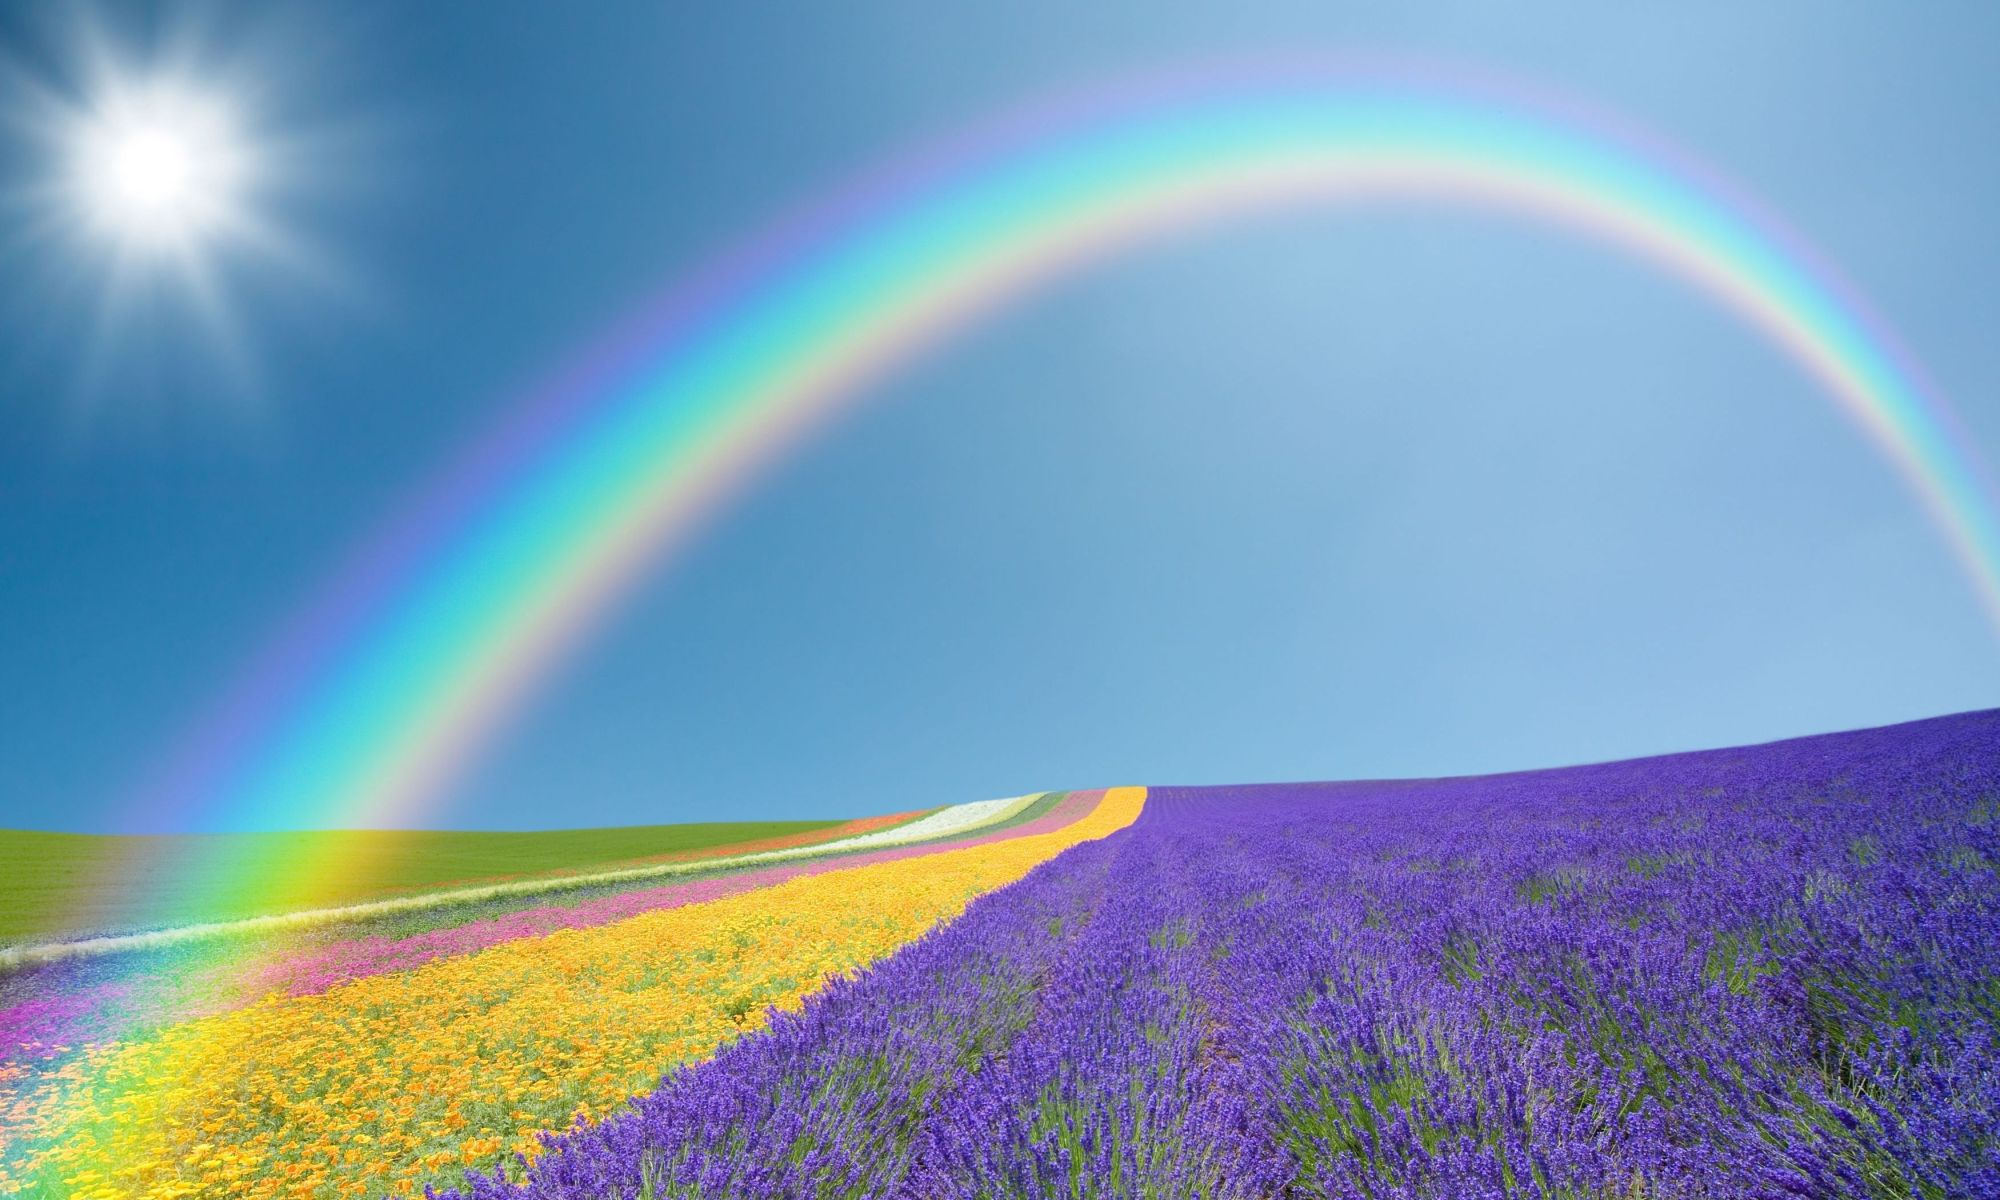 Rainbow Symbolic Meaning Whispers Channels Prophecies Visions